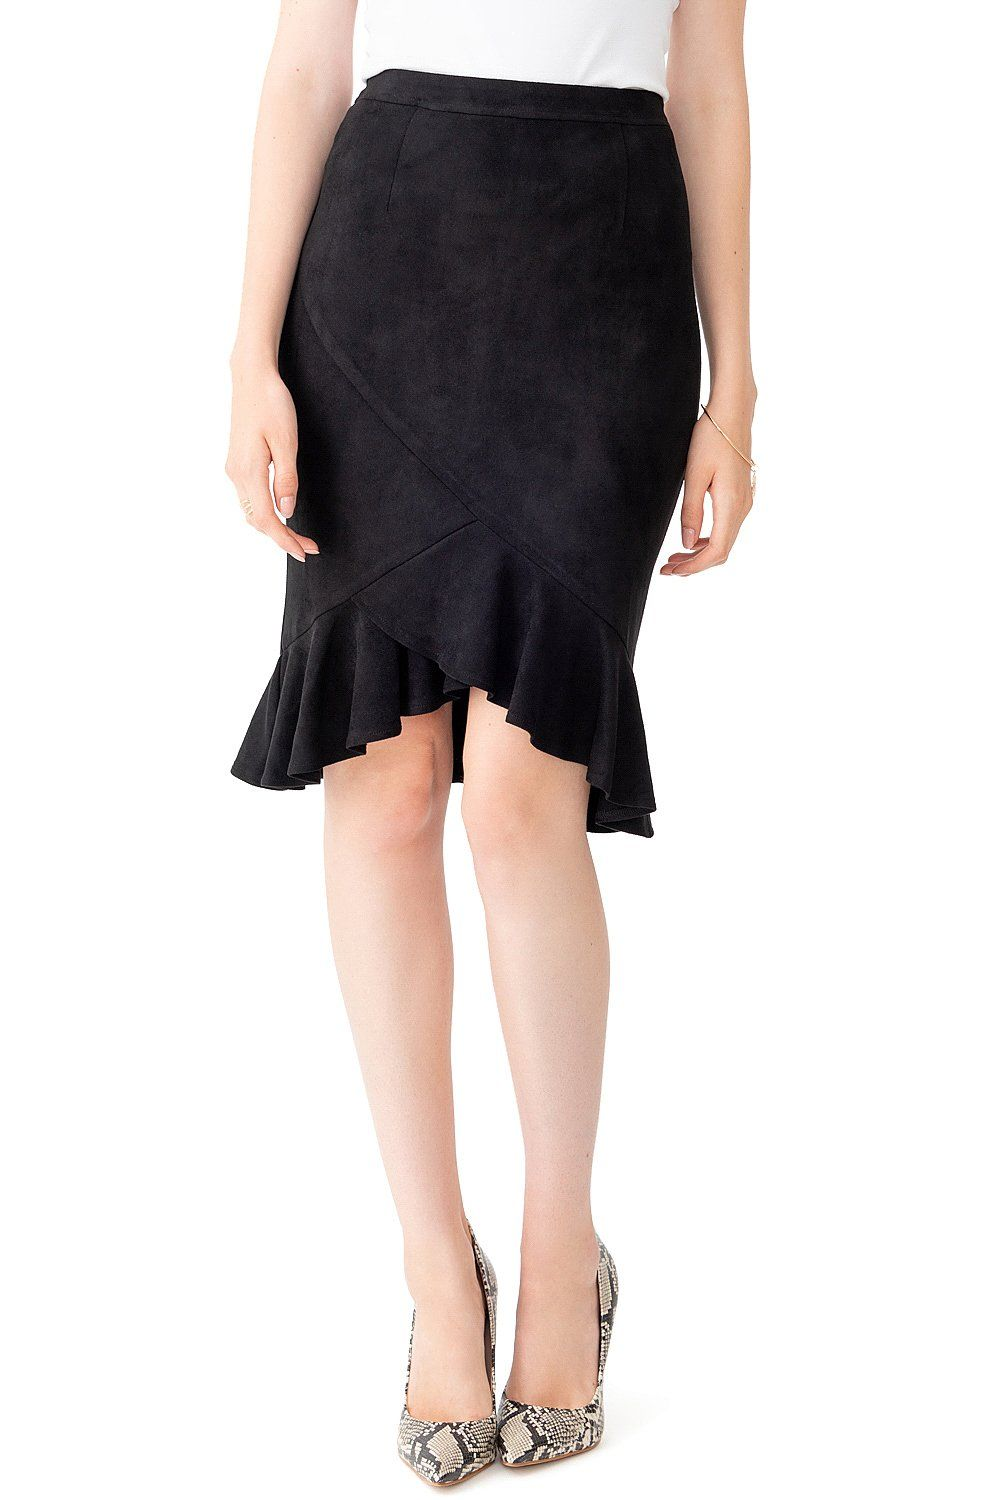 b434b2c666 Ruffled Front Skirt with Back Flounce - Black | Clothes to buy in ...